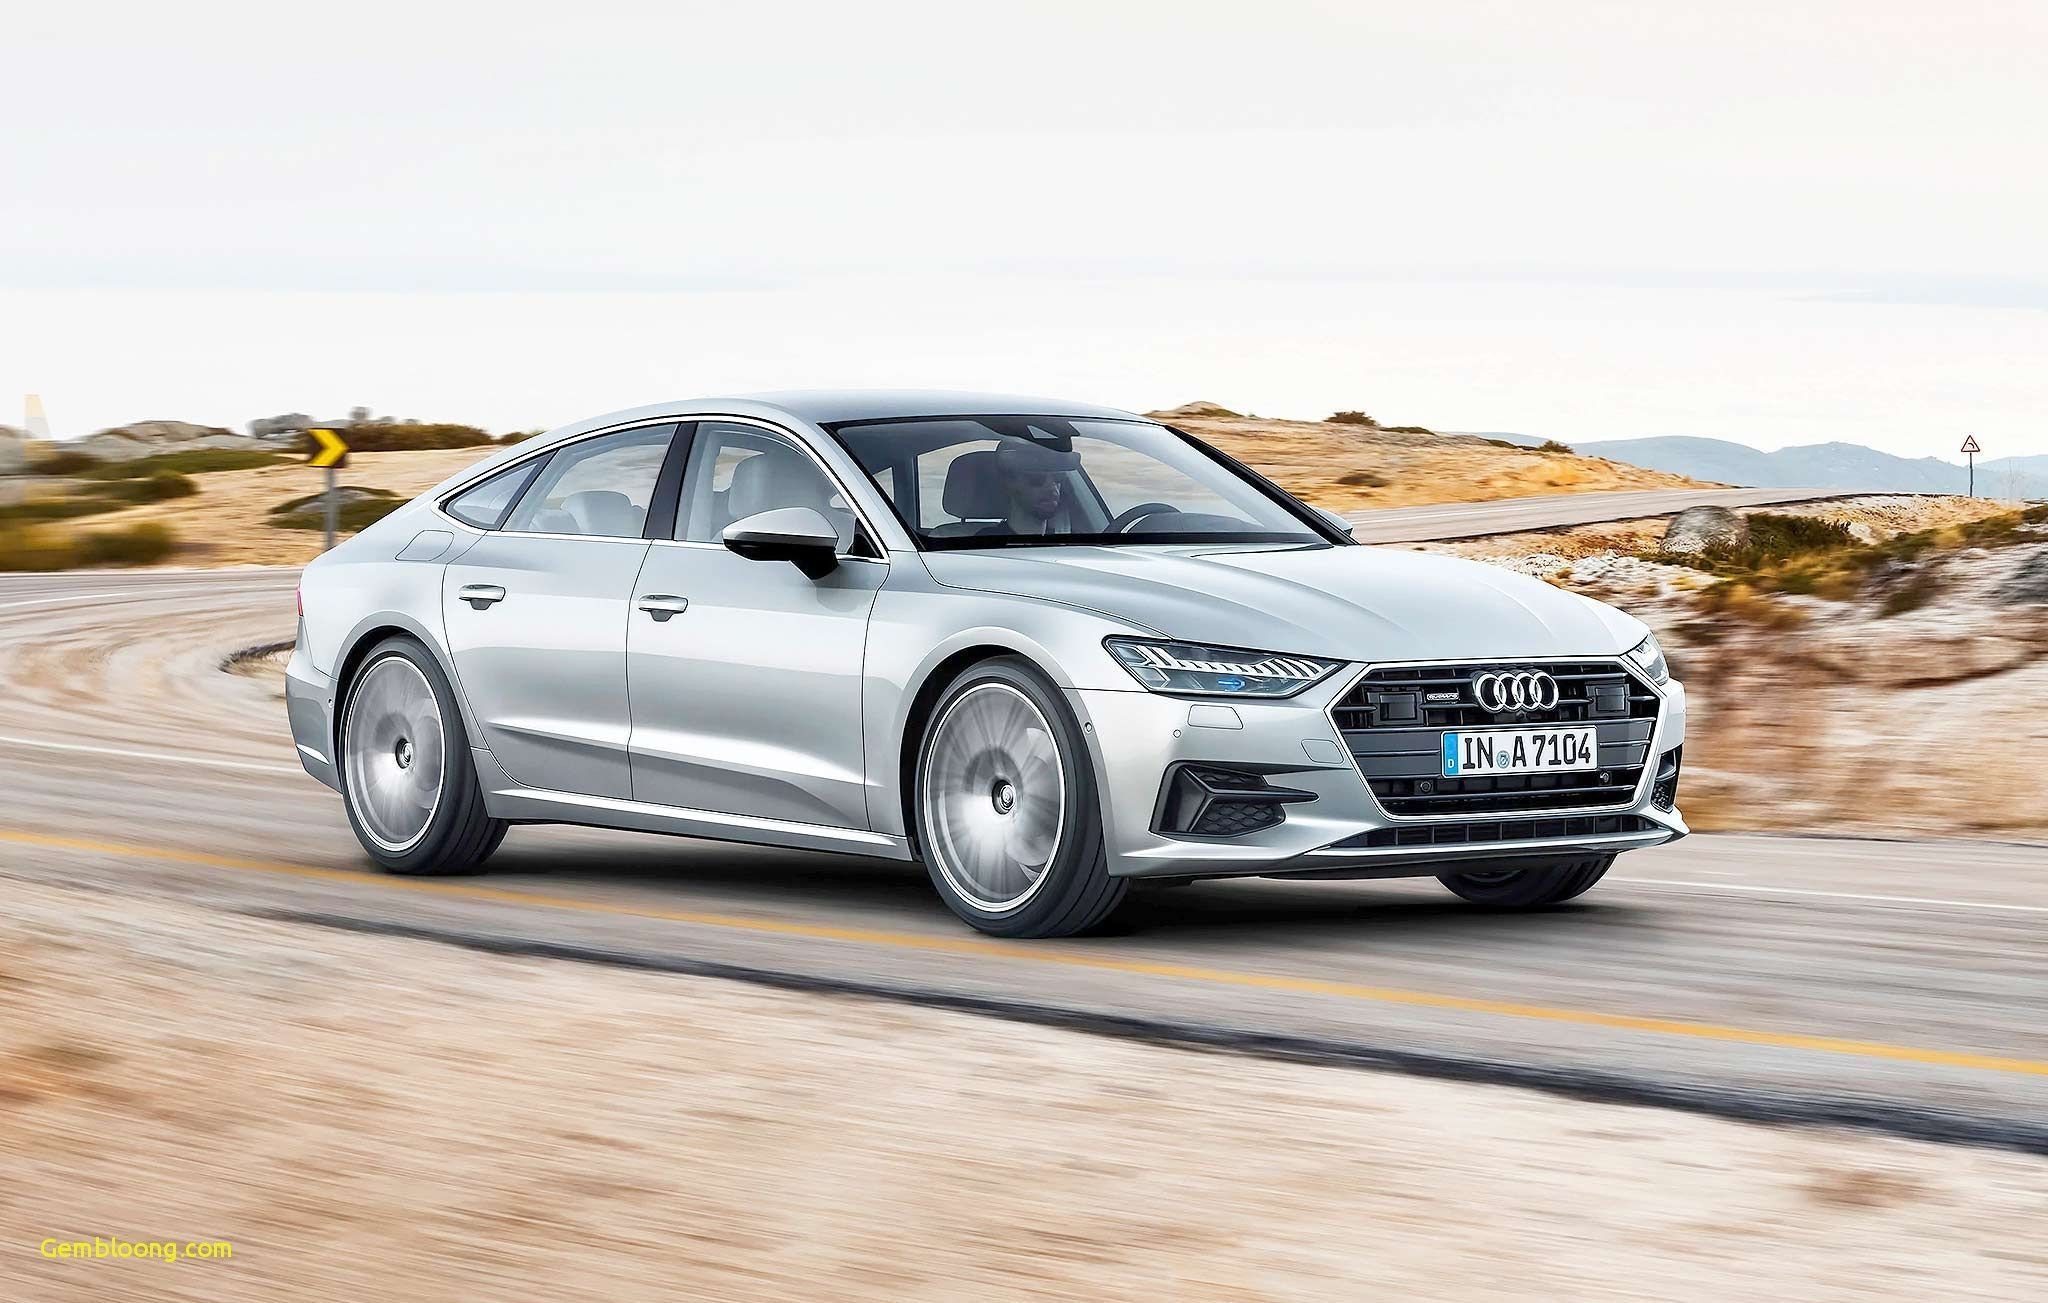 2020 Audi A8 Interior Release Date Price Disclosed Formerly This Year The Latest 2020 Audi A8 Managed To Stun A Lot Of P Audi A6 Allroad Concept Cars Audi